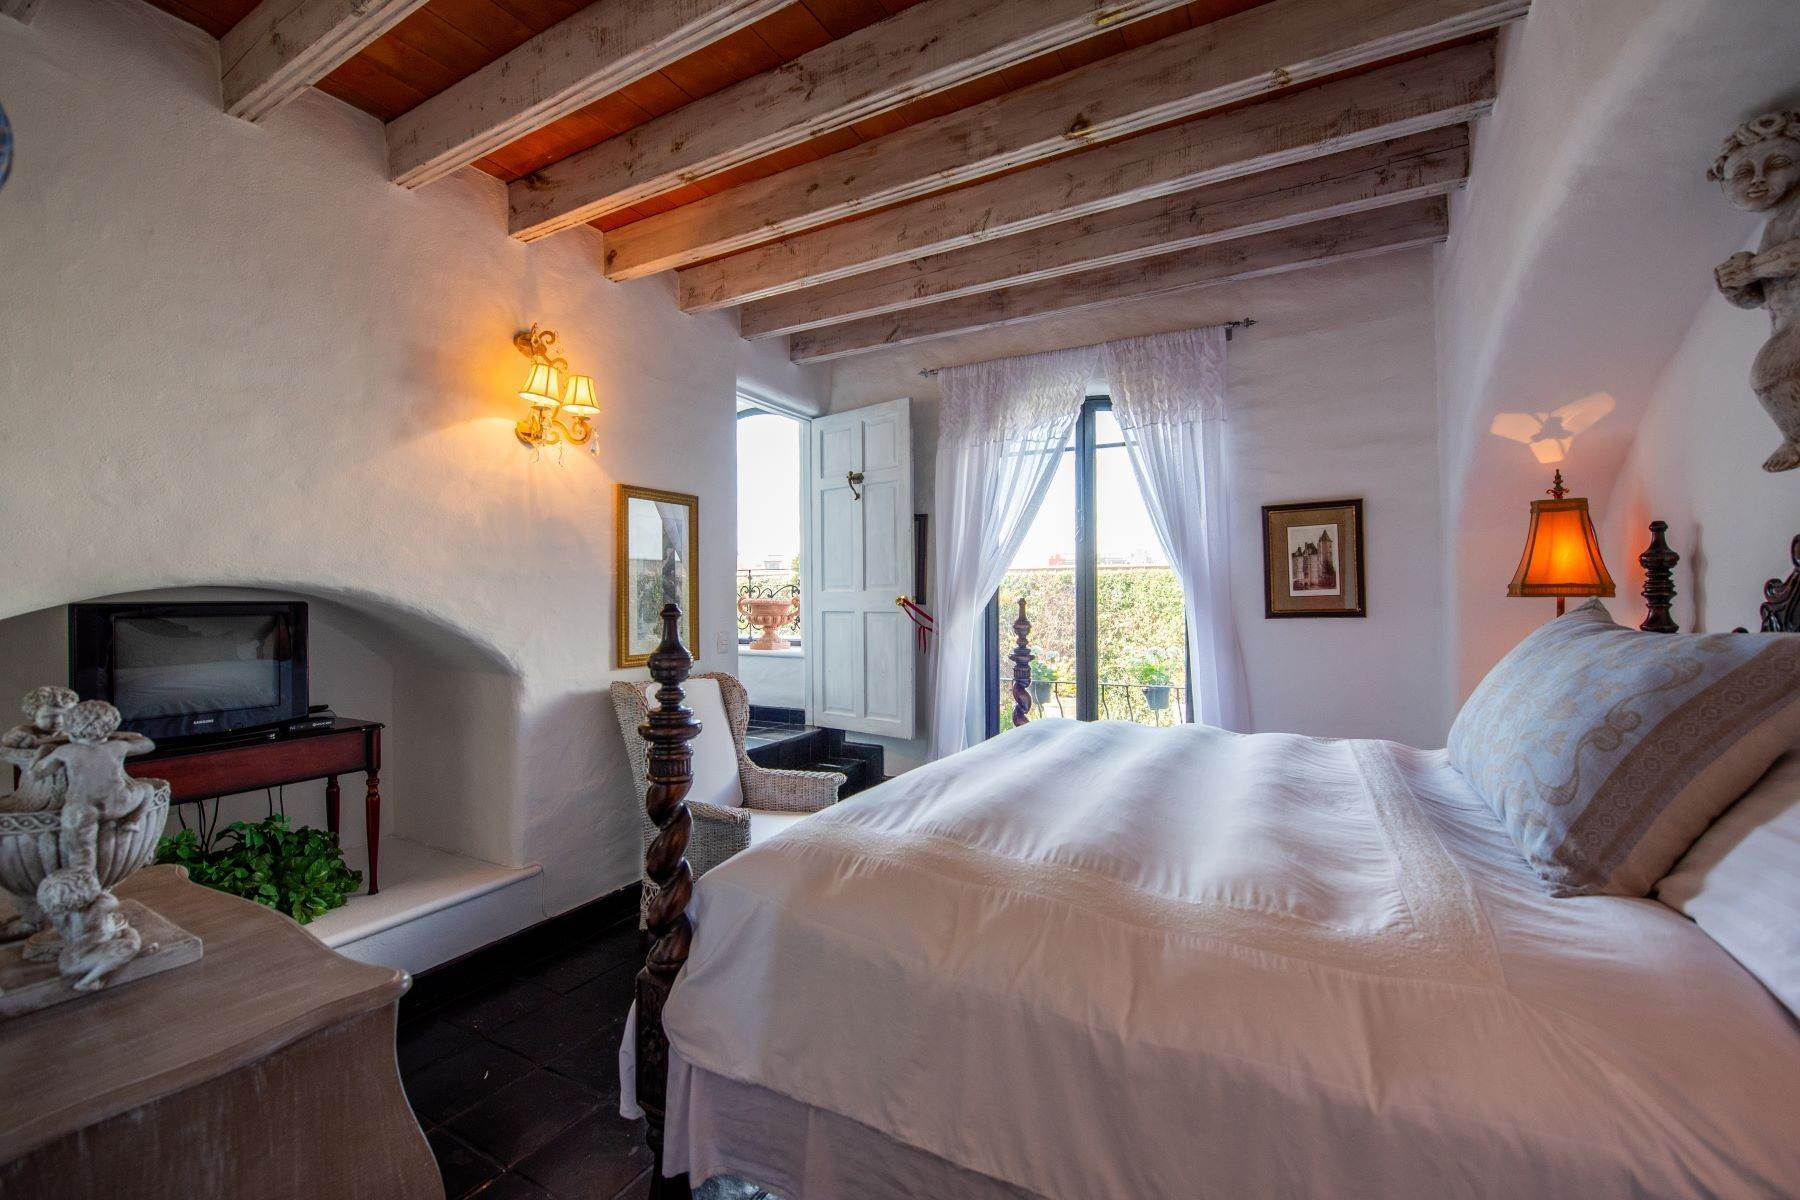 32. Single Family Homes for Sale at Casa Mi Besito Atascadero, San Miguel De Allende, Guanajuato Mexico